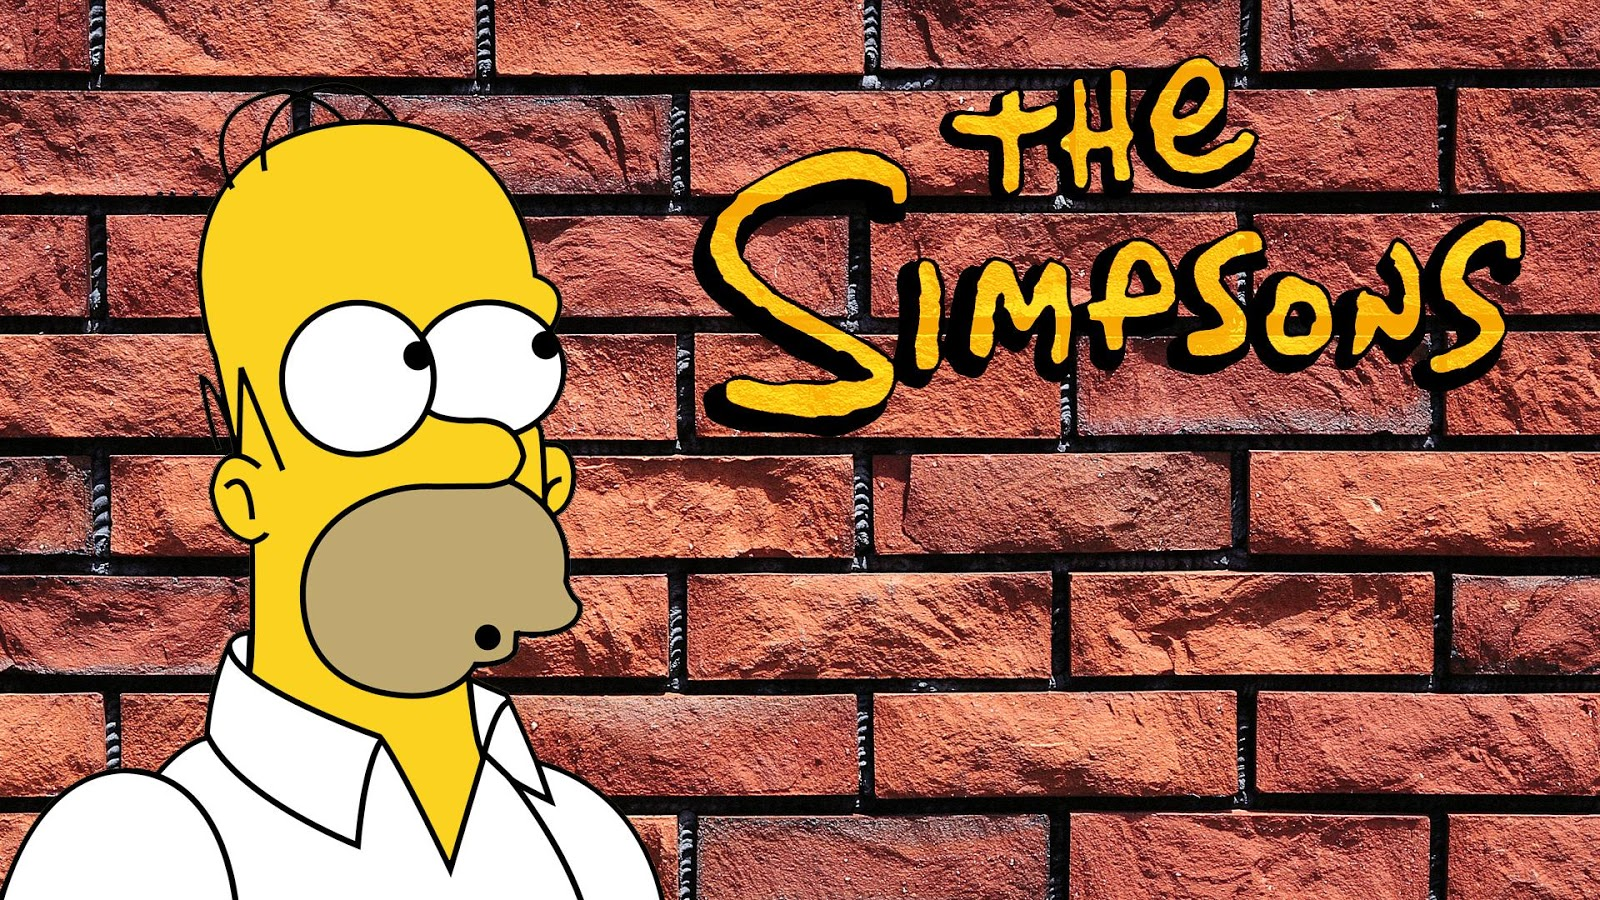 The Simpsons HD Pictures & Wallpapers | My HD Pictures: myhdpictures.blogspot.com/2013/07/the-simpsons-hd-pictures...